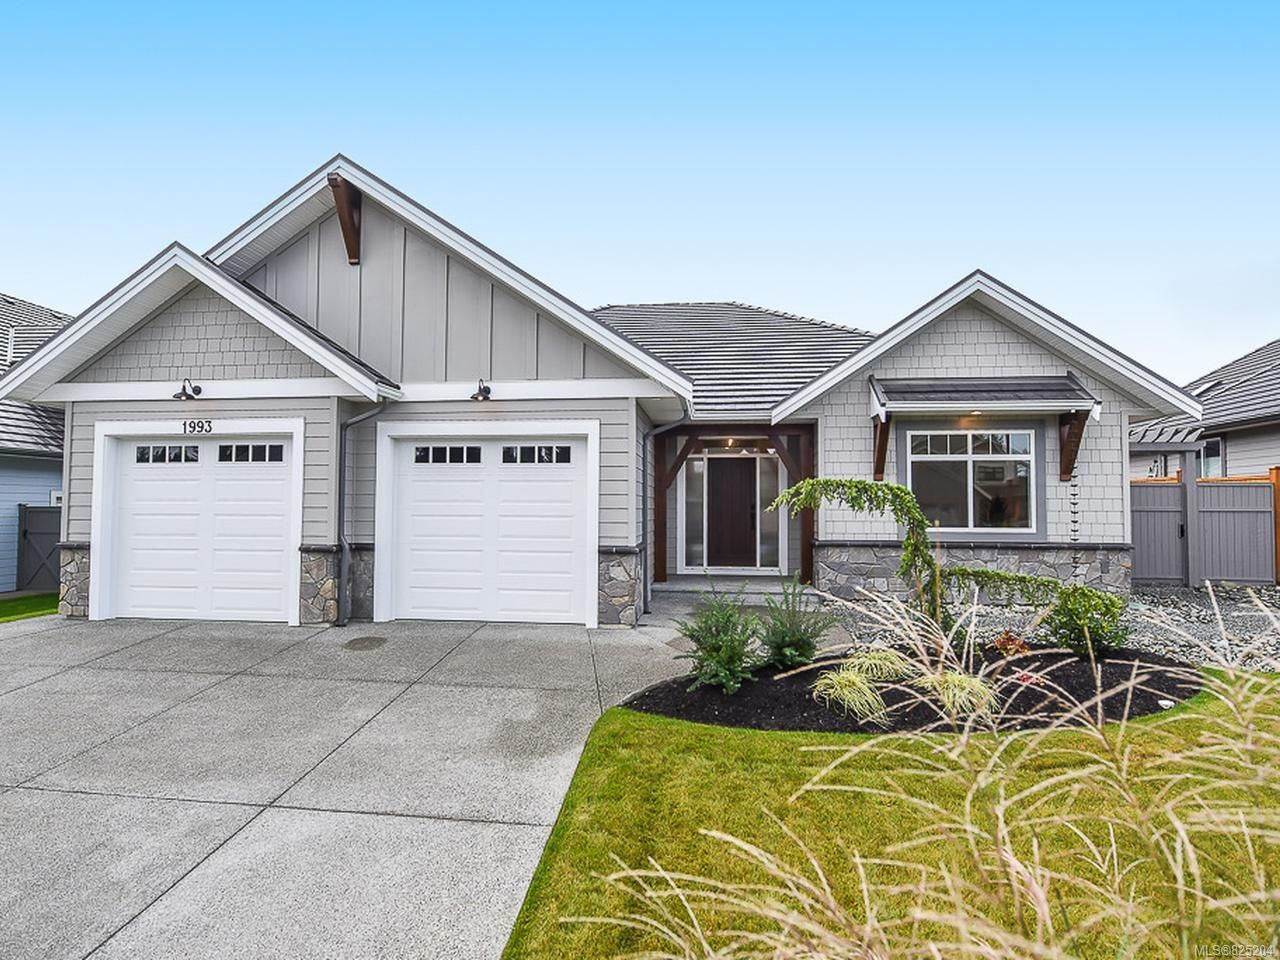 Main Photo: 1993 Crown Isle Dr in COURTENAY: CV Crown Isle House for sale (Comox Valley)  : MLS®# 825204